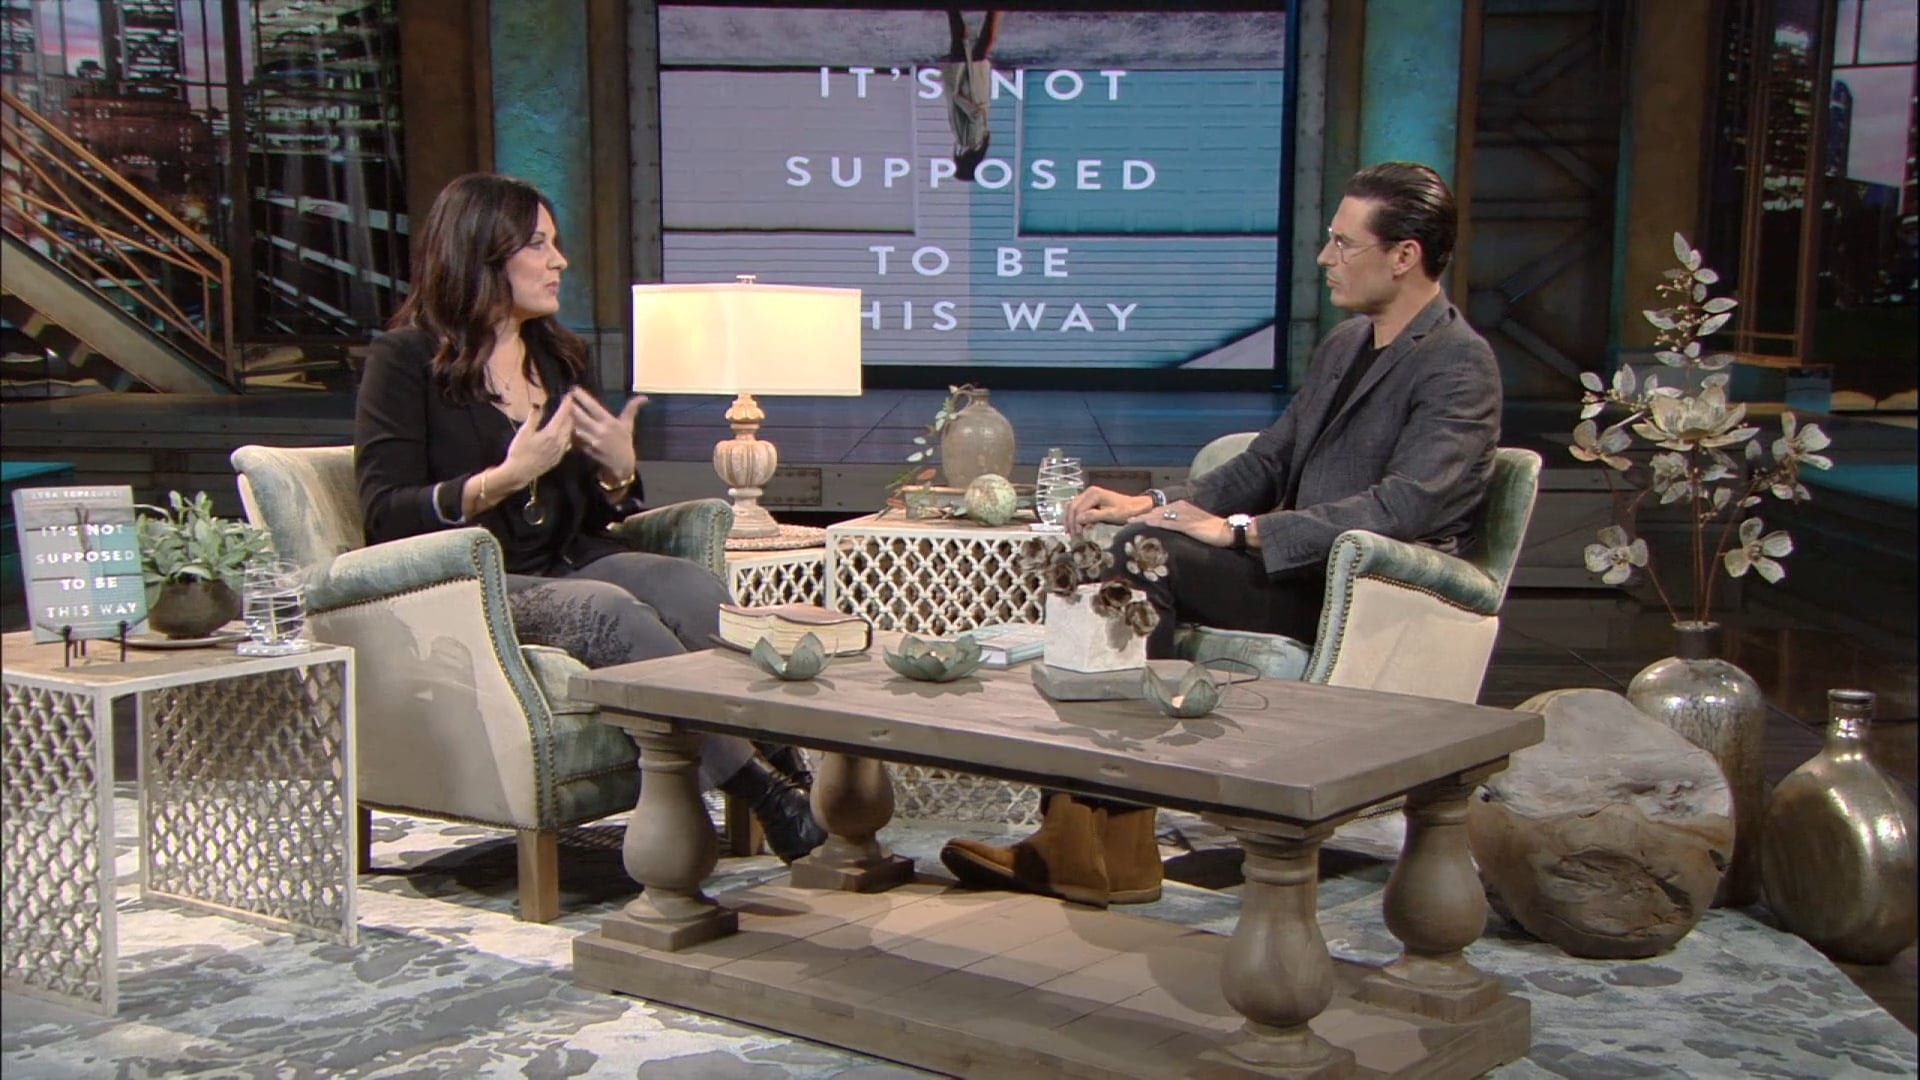 Watch Praise | Lysa TerKeurst | 12/3/18